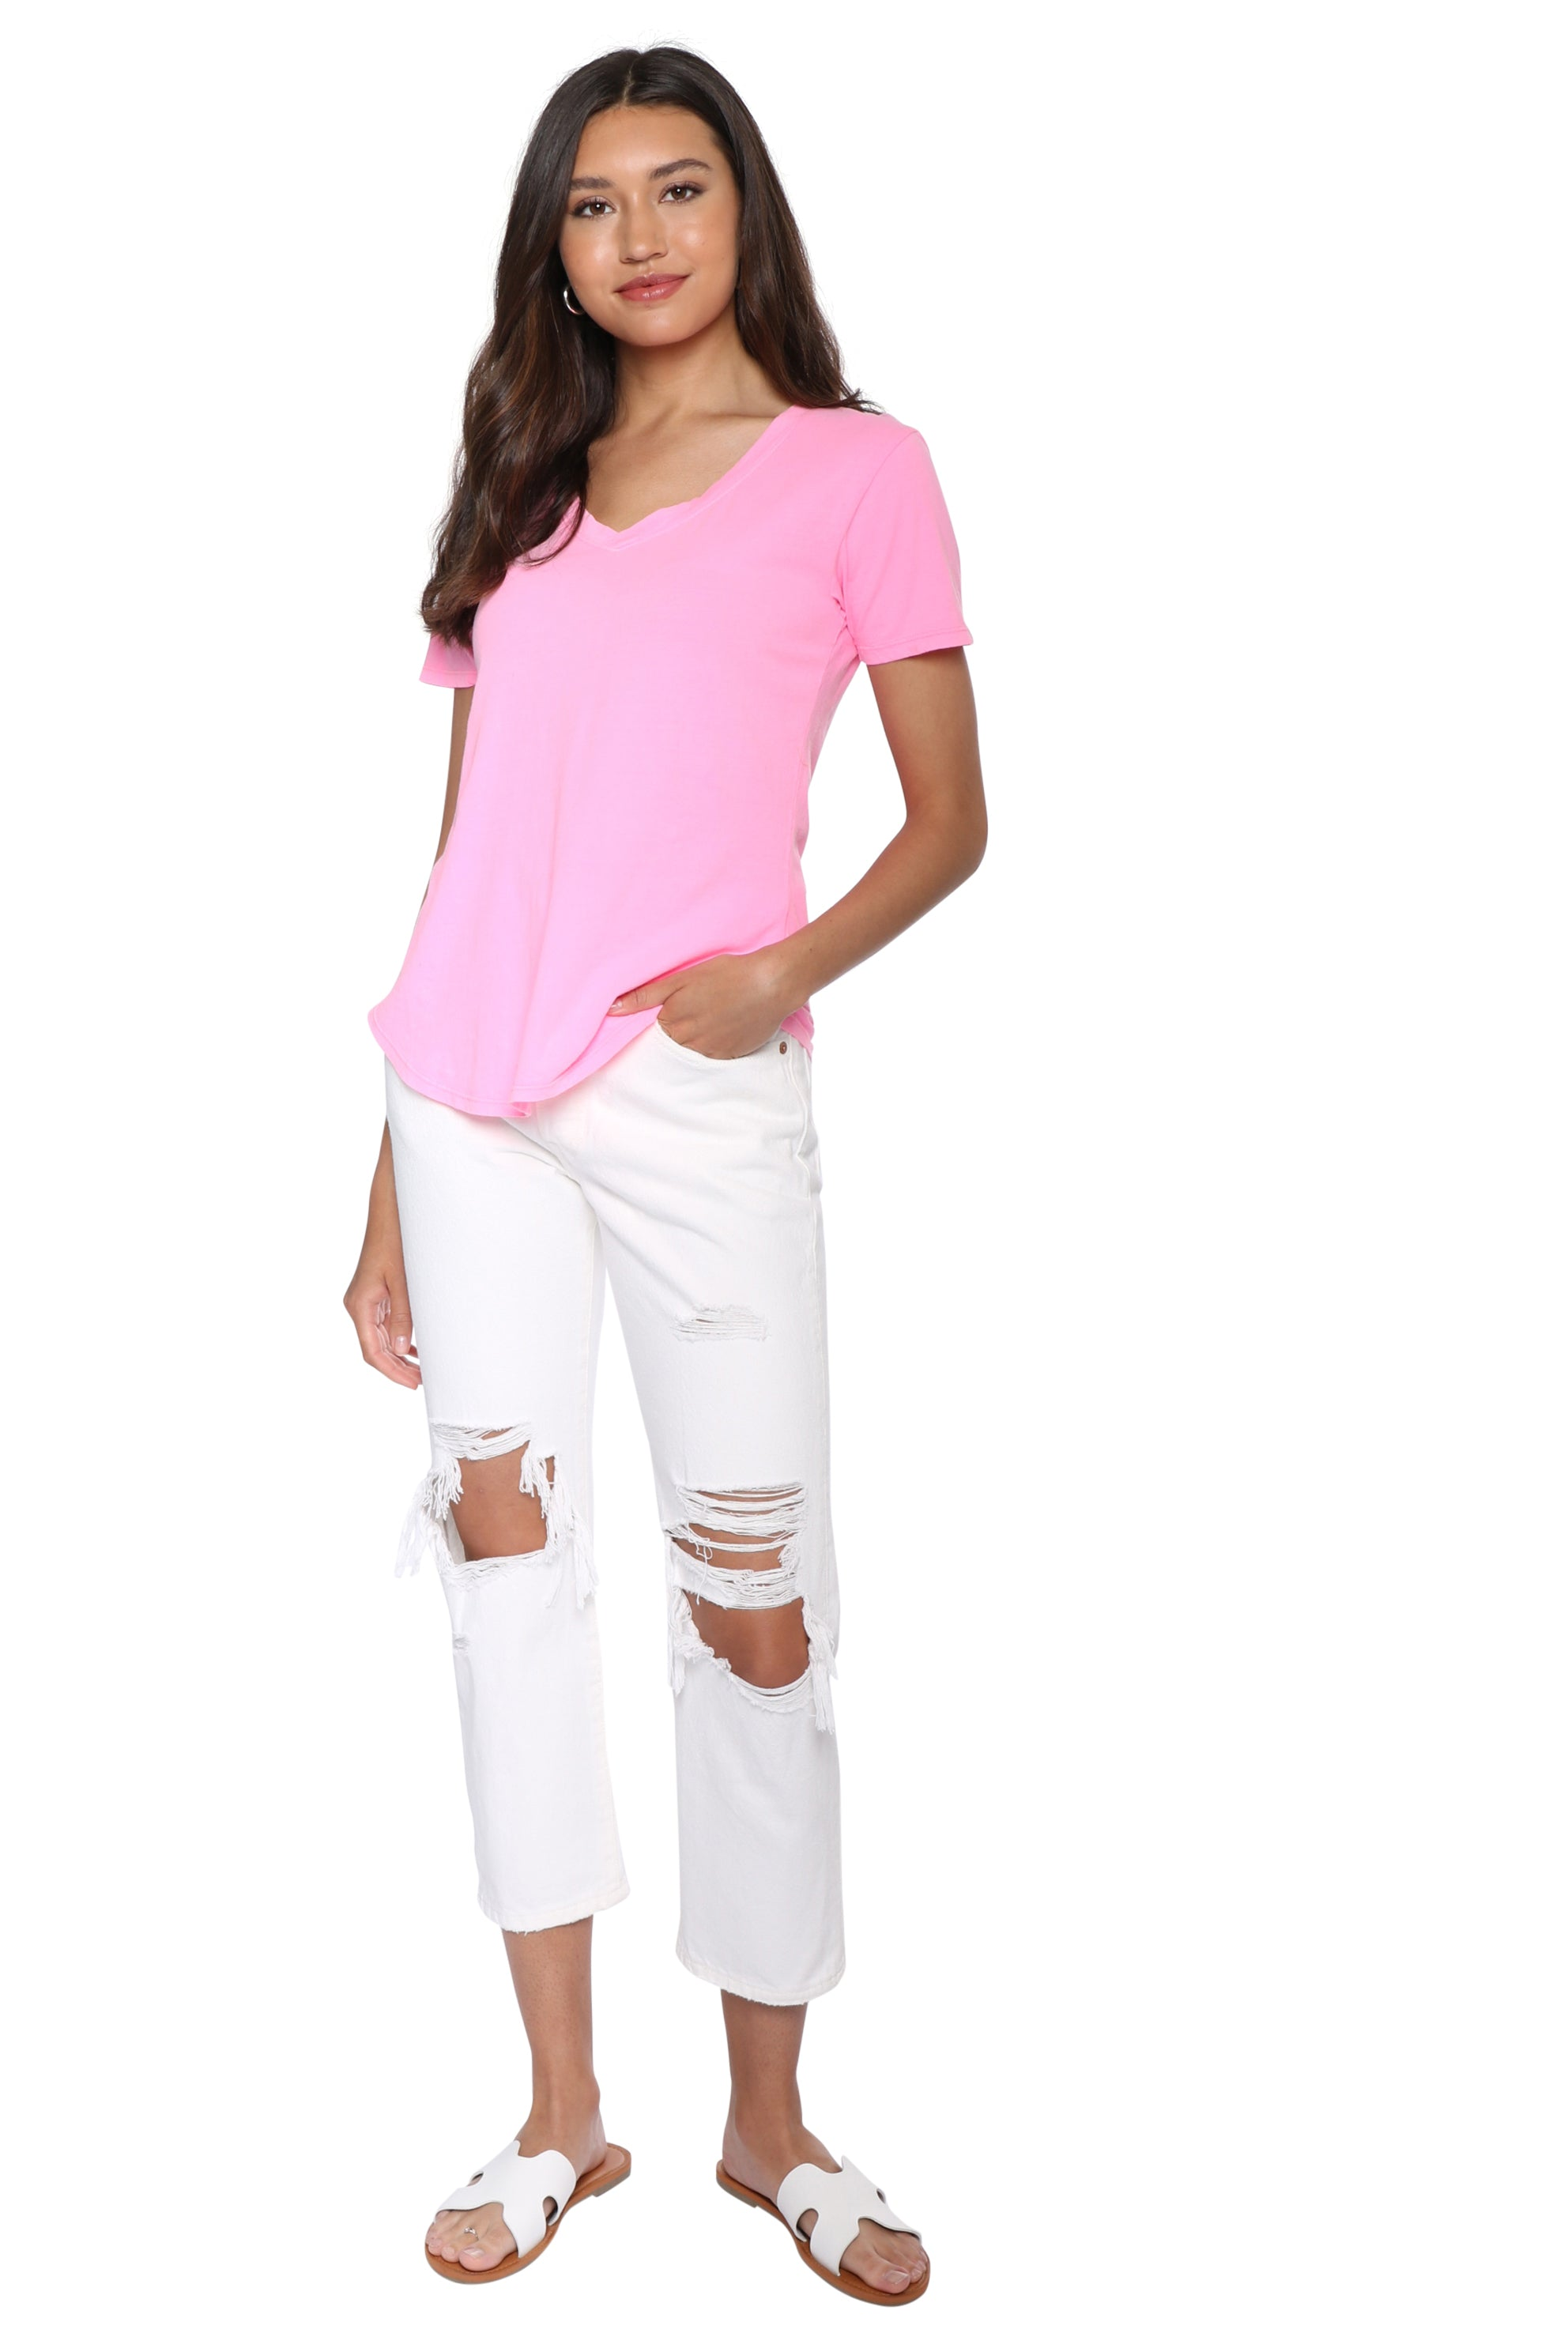 00df62b225160 New Arrivals - Shop the Latest Dresses, Tops, Bottoms, and Denim ...